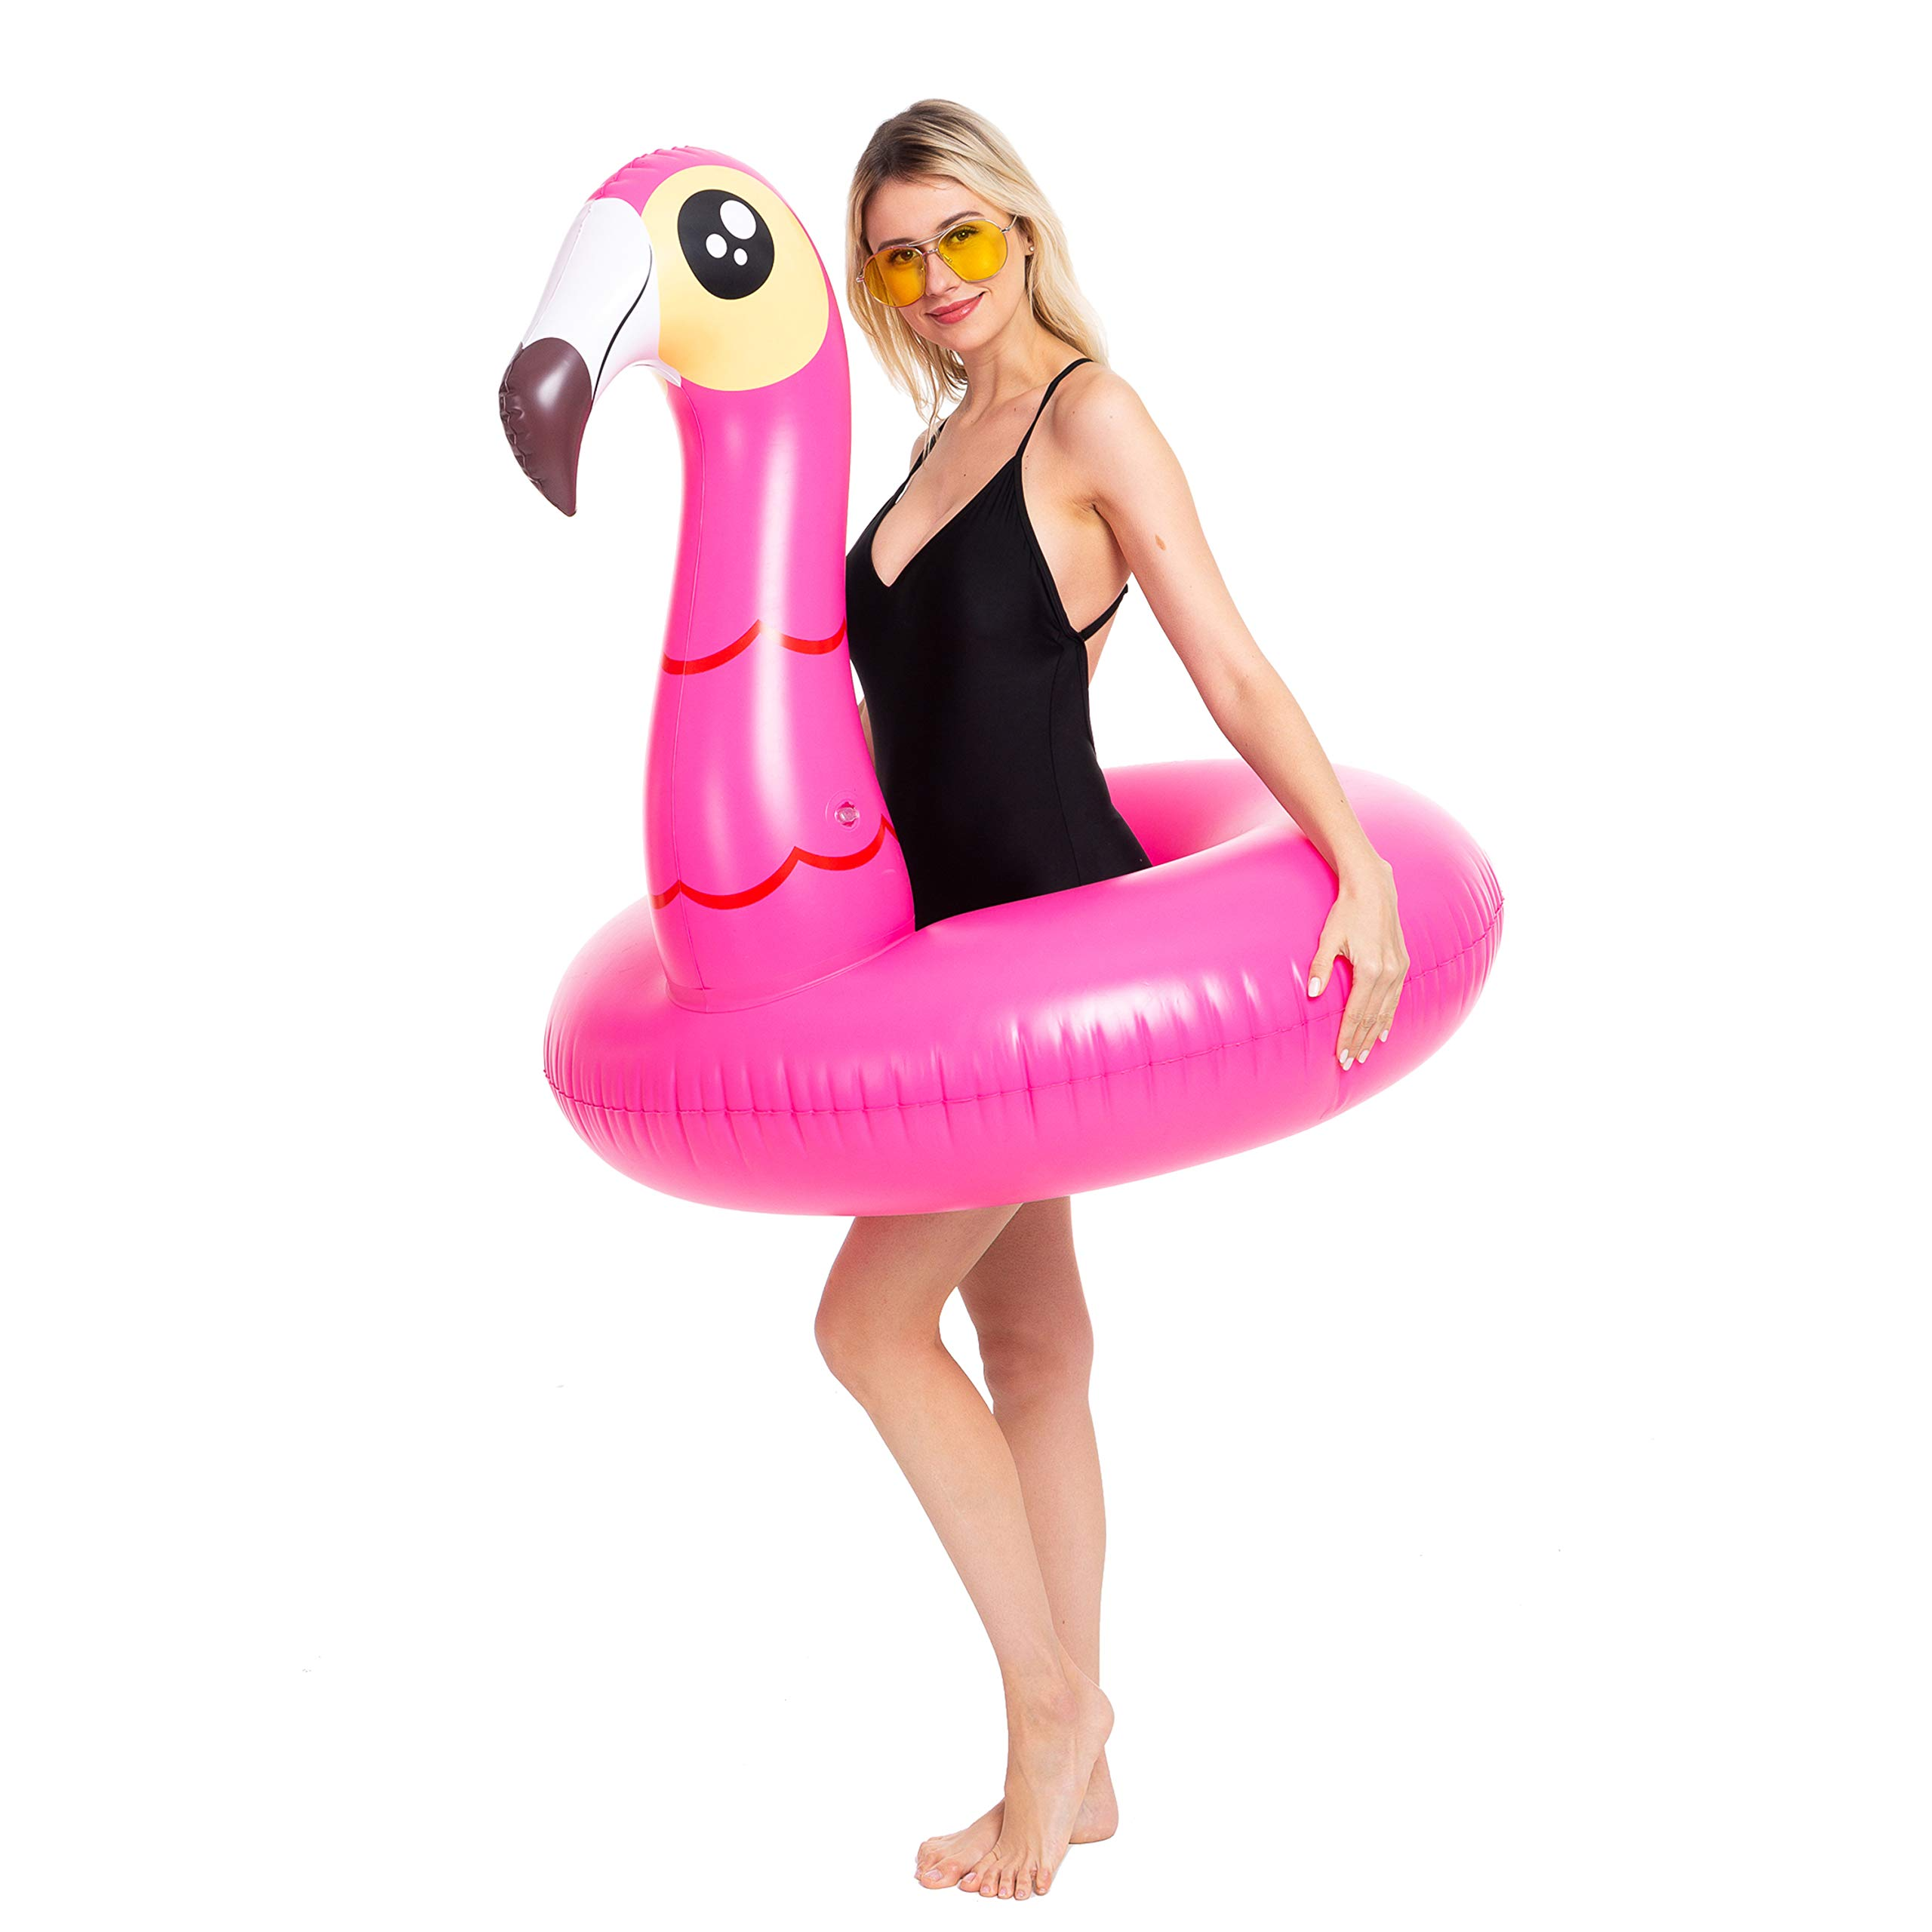 JOYIN Inflatable Flamingo and Unicorn Pool Float 2 Pack, Fun Beach Floaties, Swim Party Toys, Summer Pool Raft Lounger for Adults & Kids (Inflates to Over 4ft. Wide) by JOYIN (Image #3)